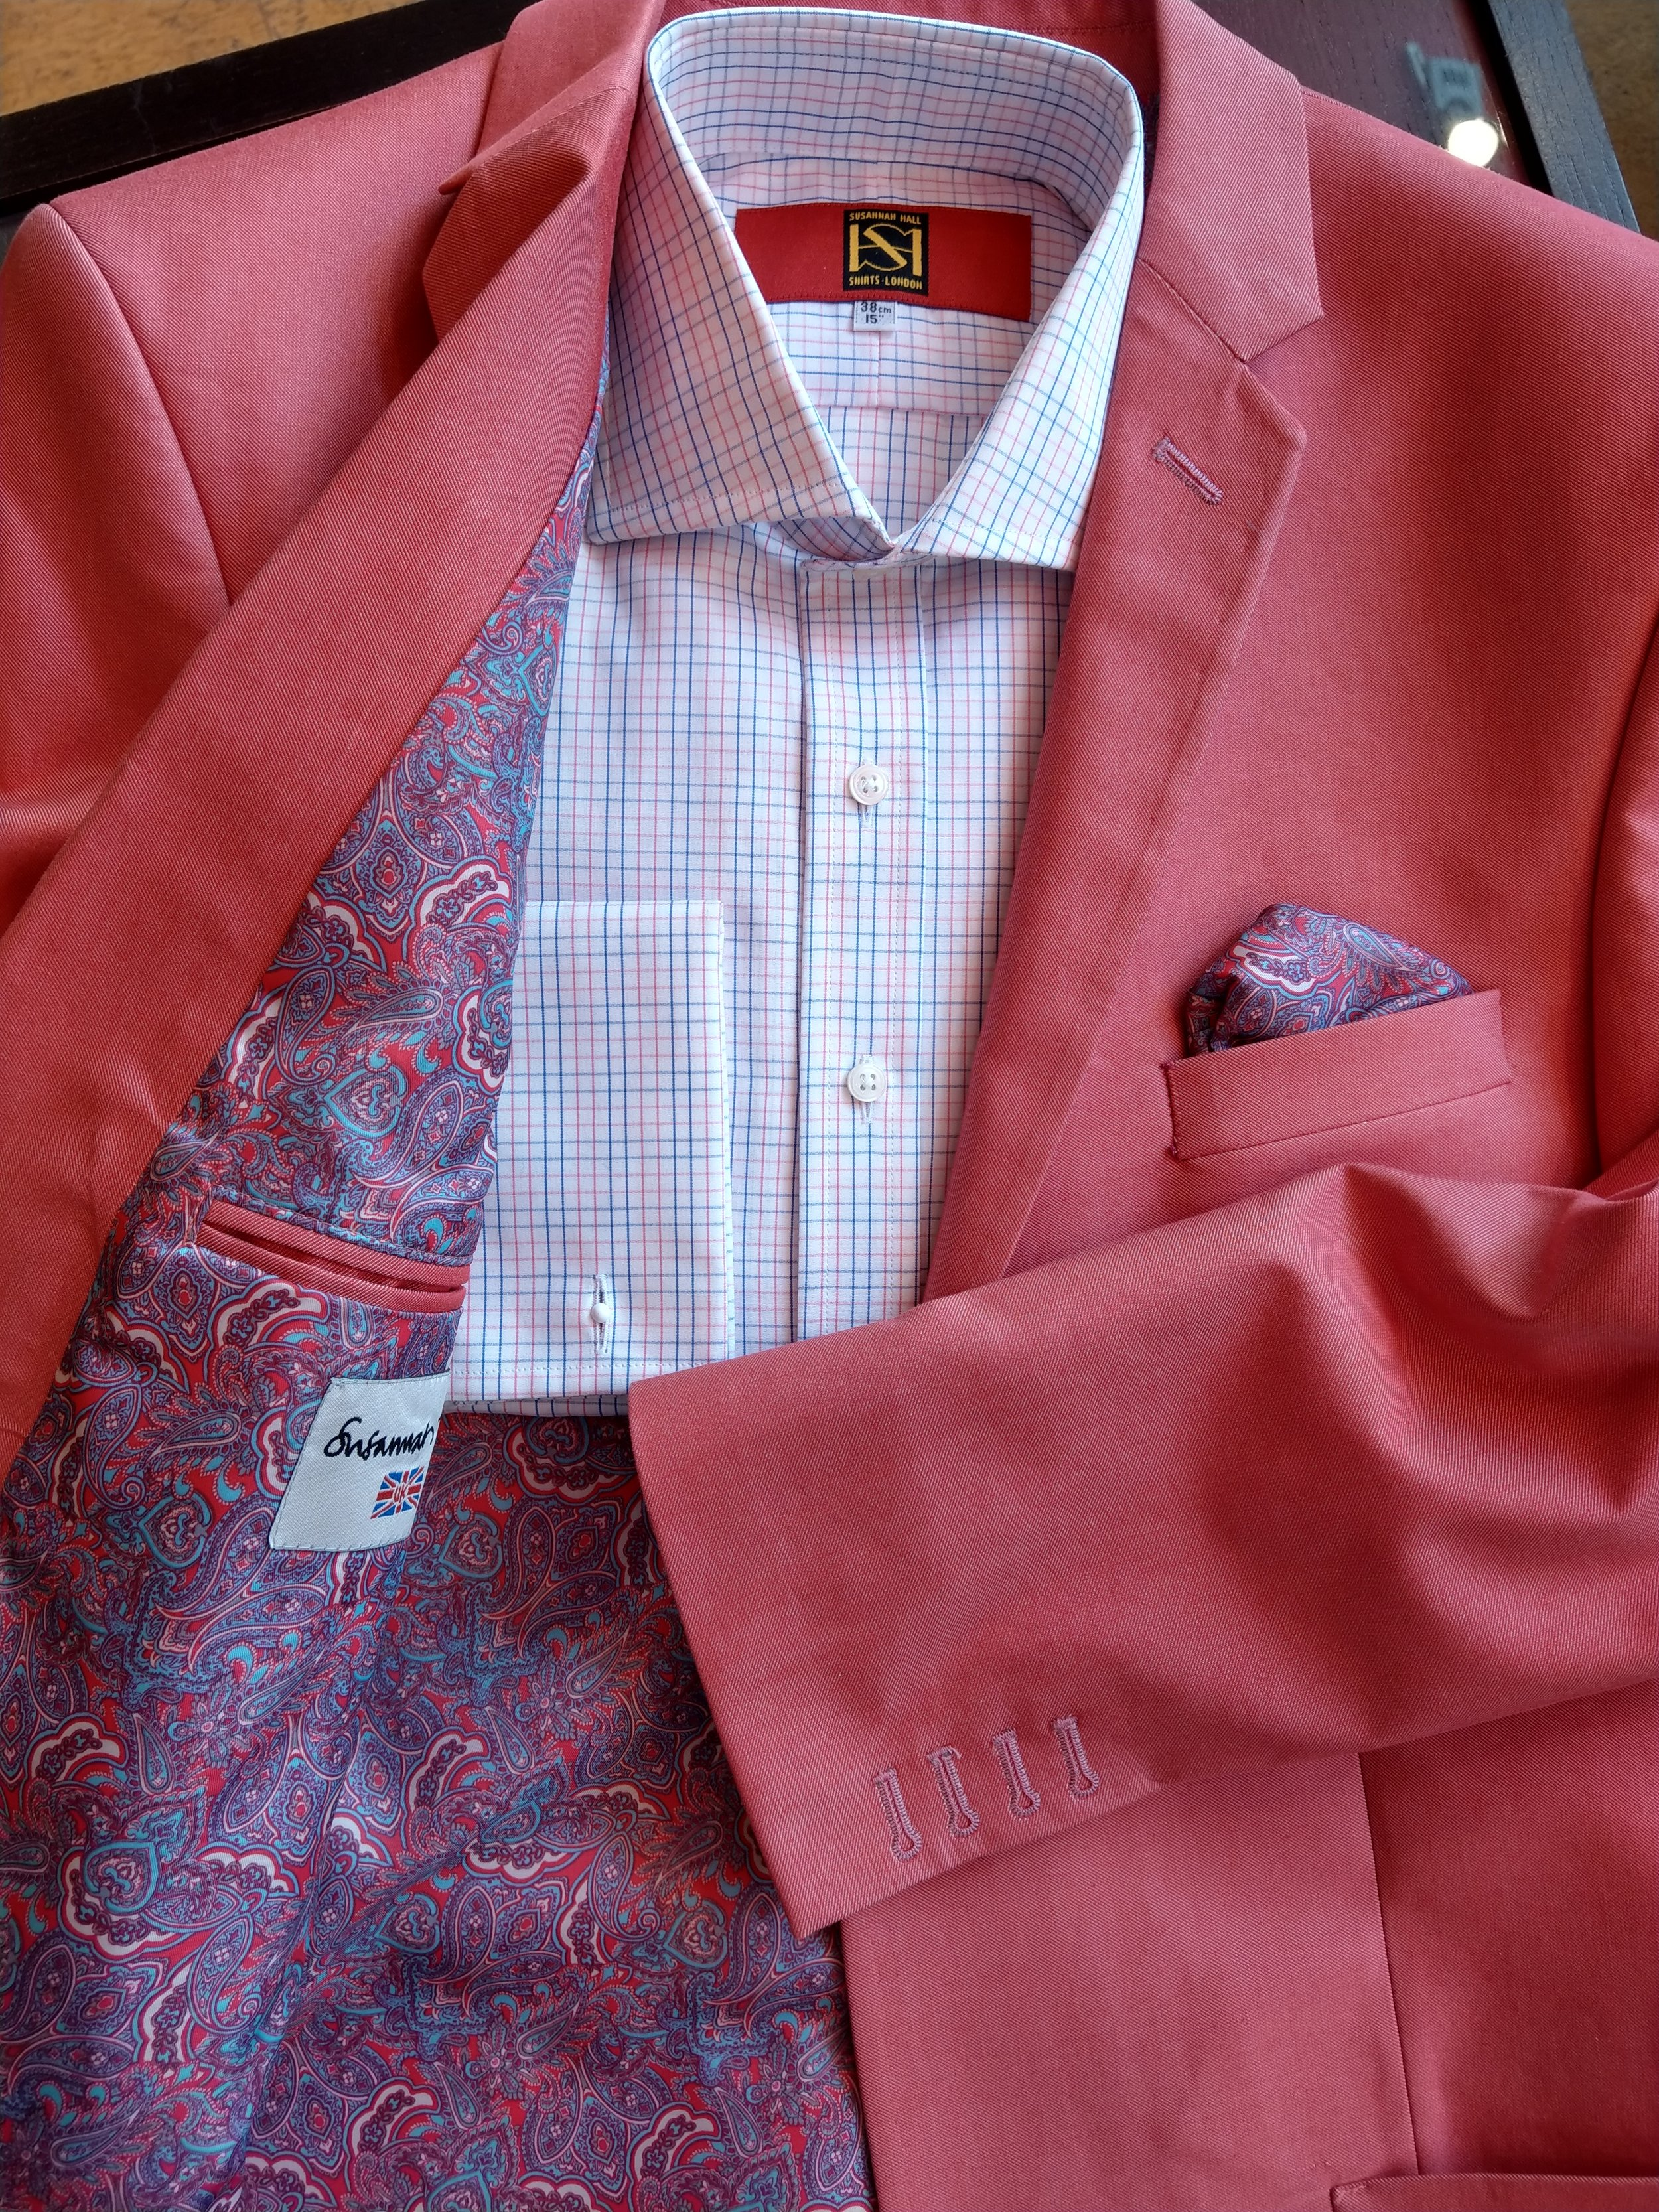 pink-blue-check-shirt-british-made-uk-bespoke-dormeuil-jacket-susannah-hall.jpg